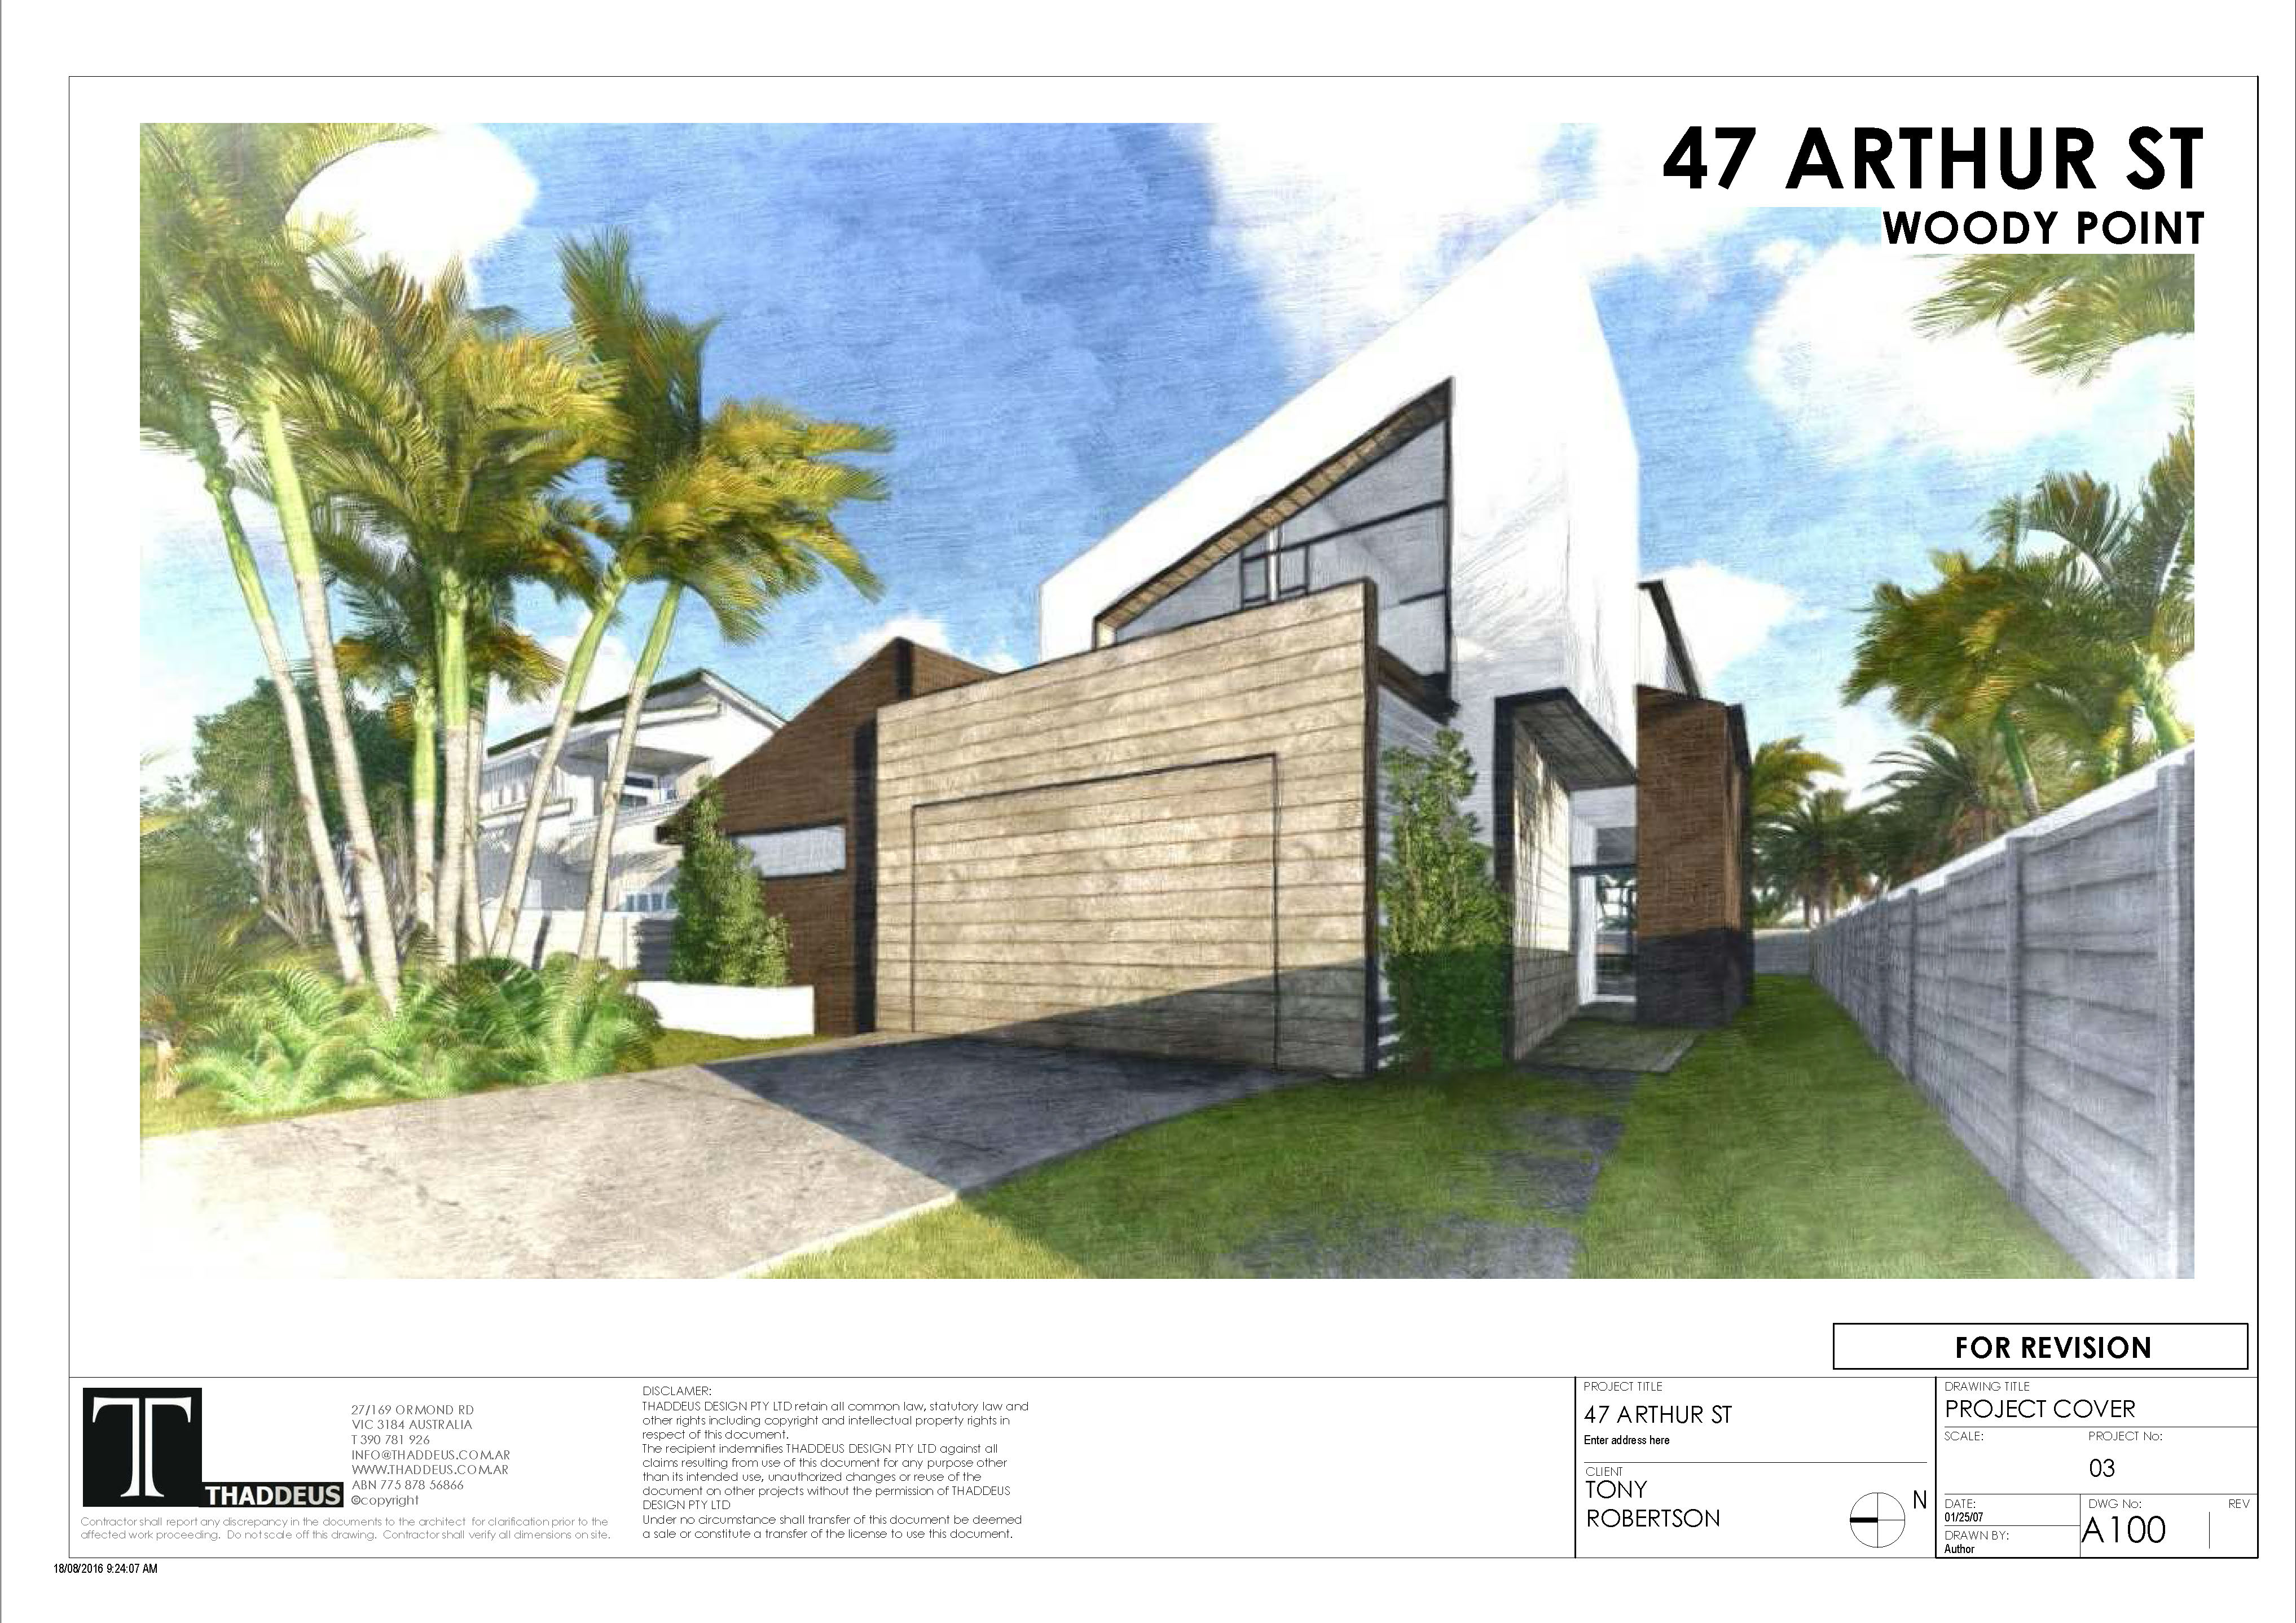 47-arthur-st-working-drawings-18-08-16_page_01